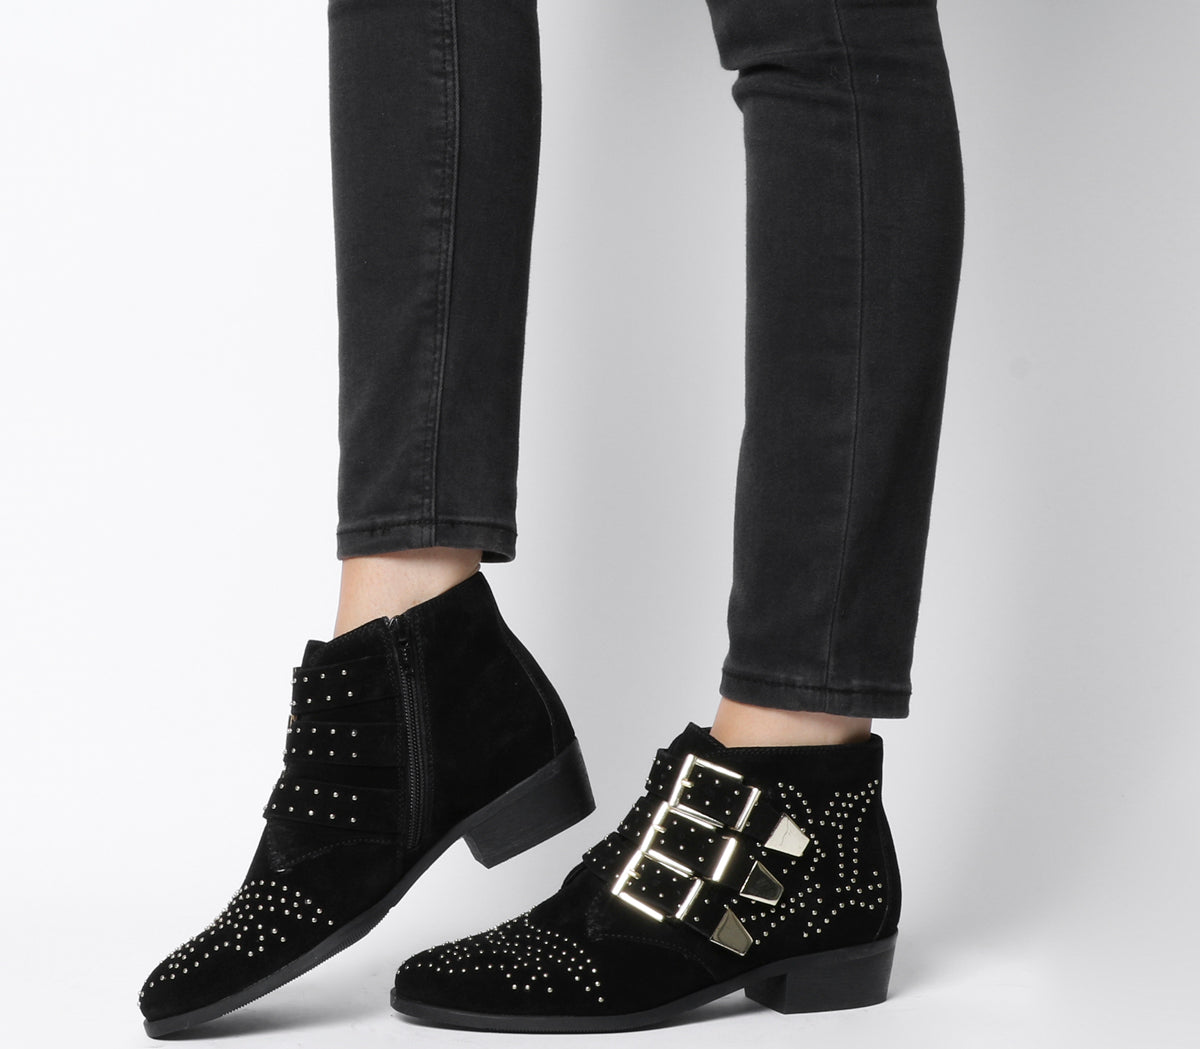 51a6ee2107ab Womens Office Alloy Stud Strap Ankle Boots Black Suede – OFFCUTS SHOES by  OFFICE